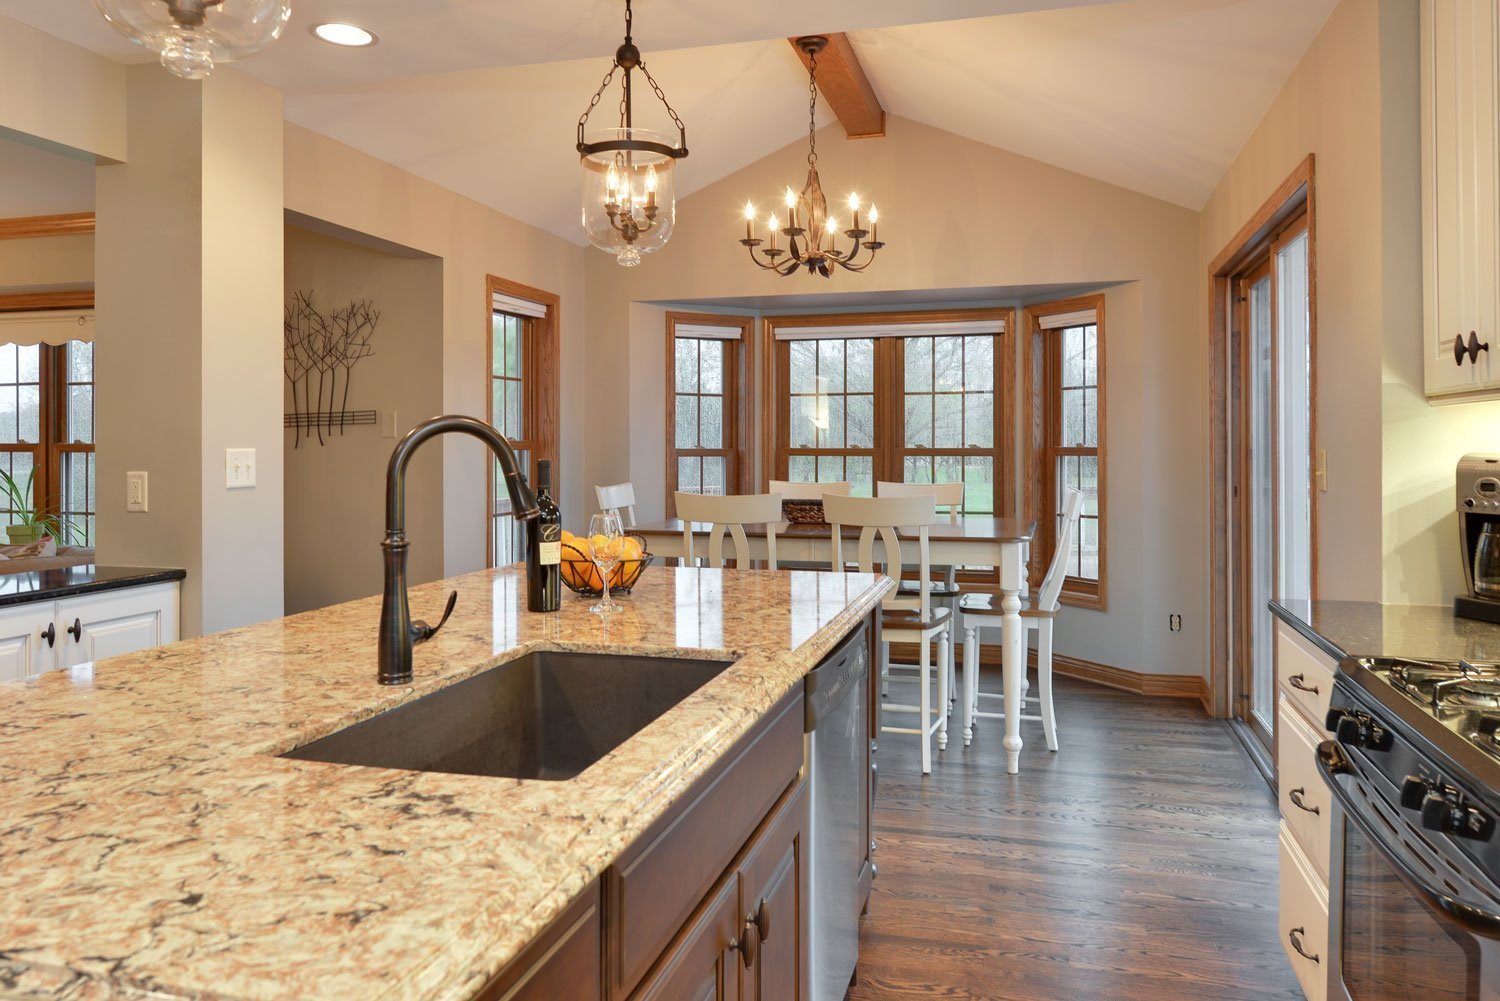 Traditional Lake Country kitchen